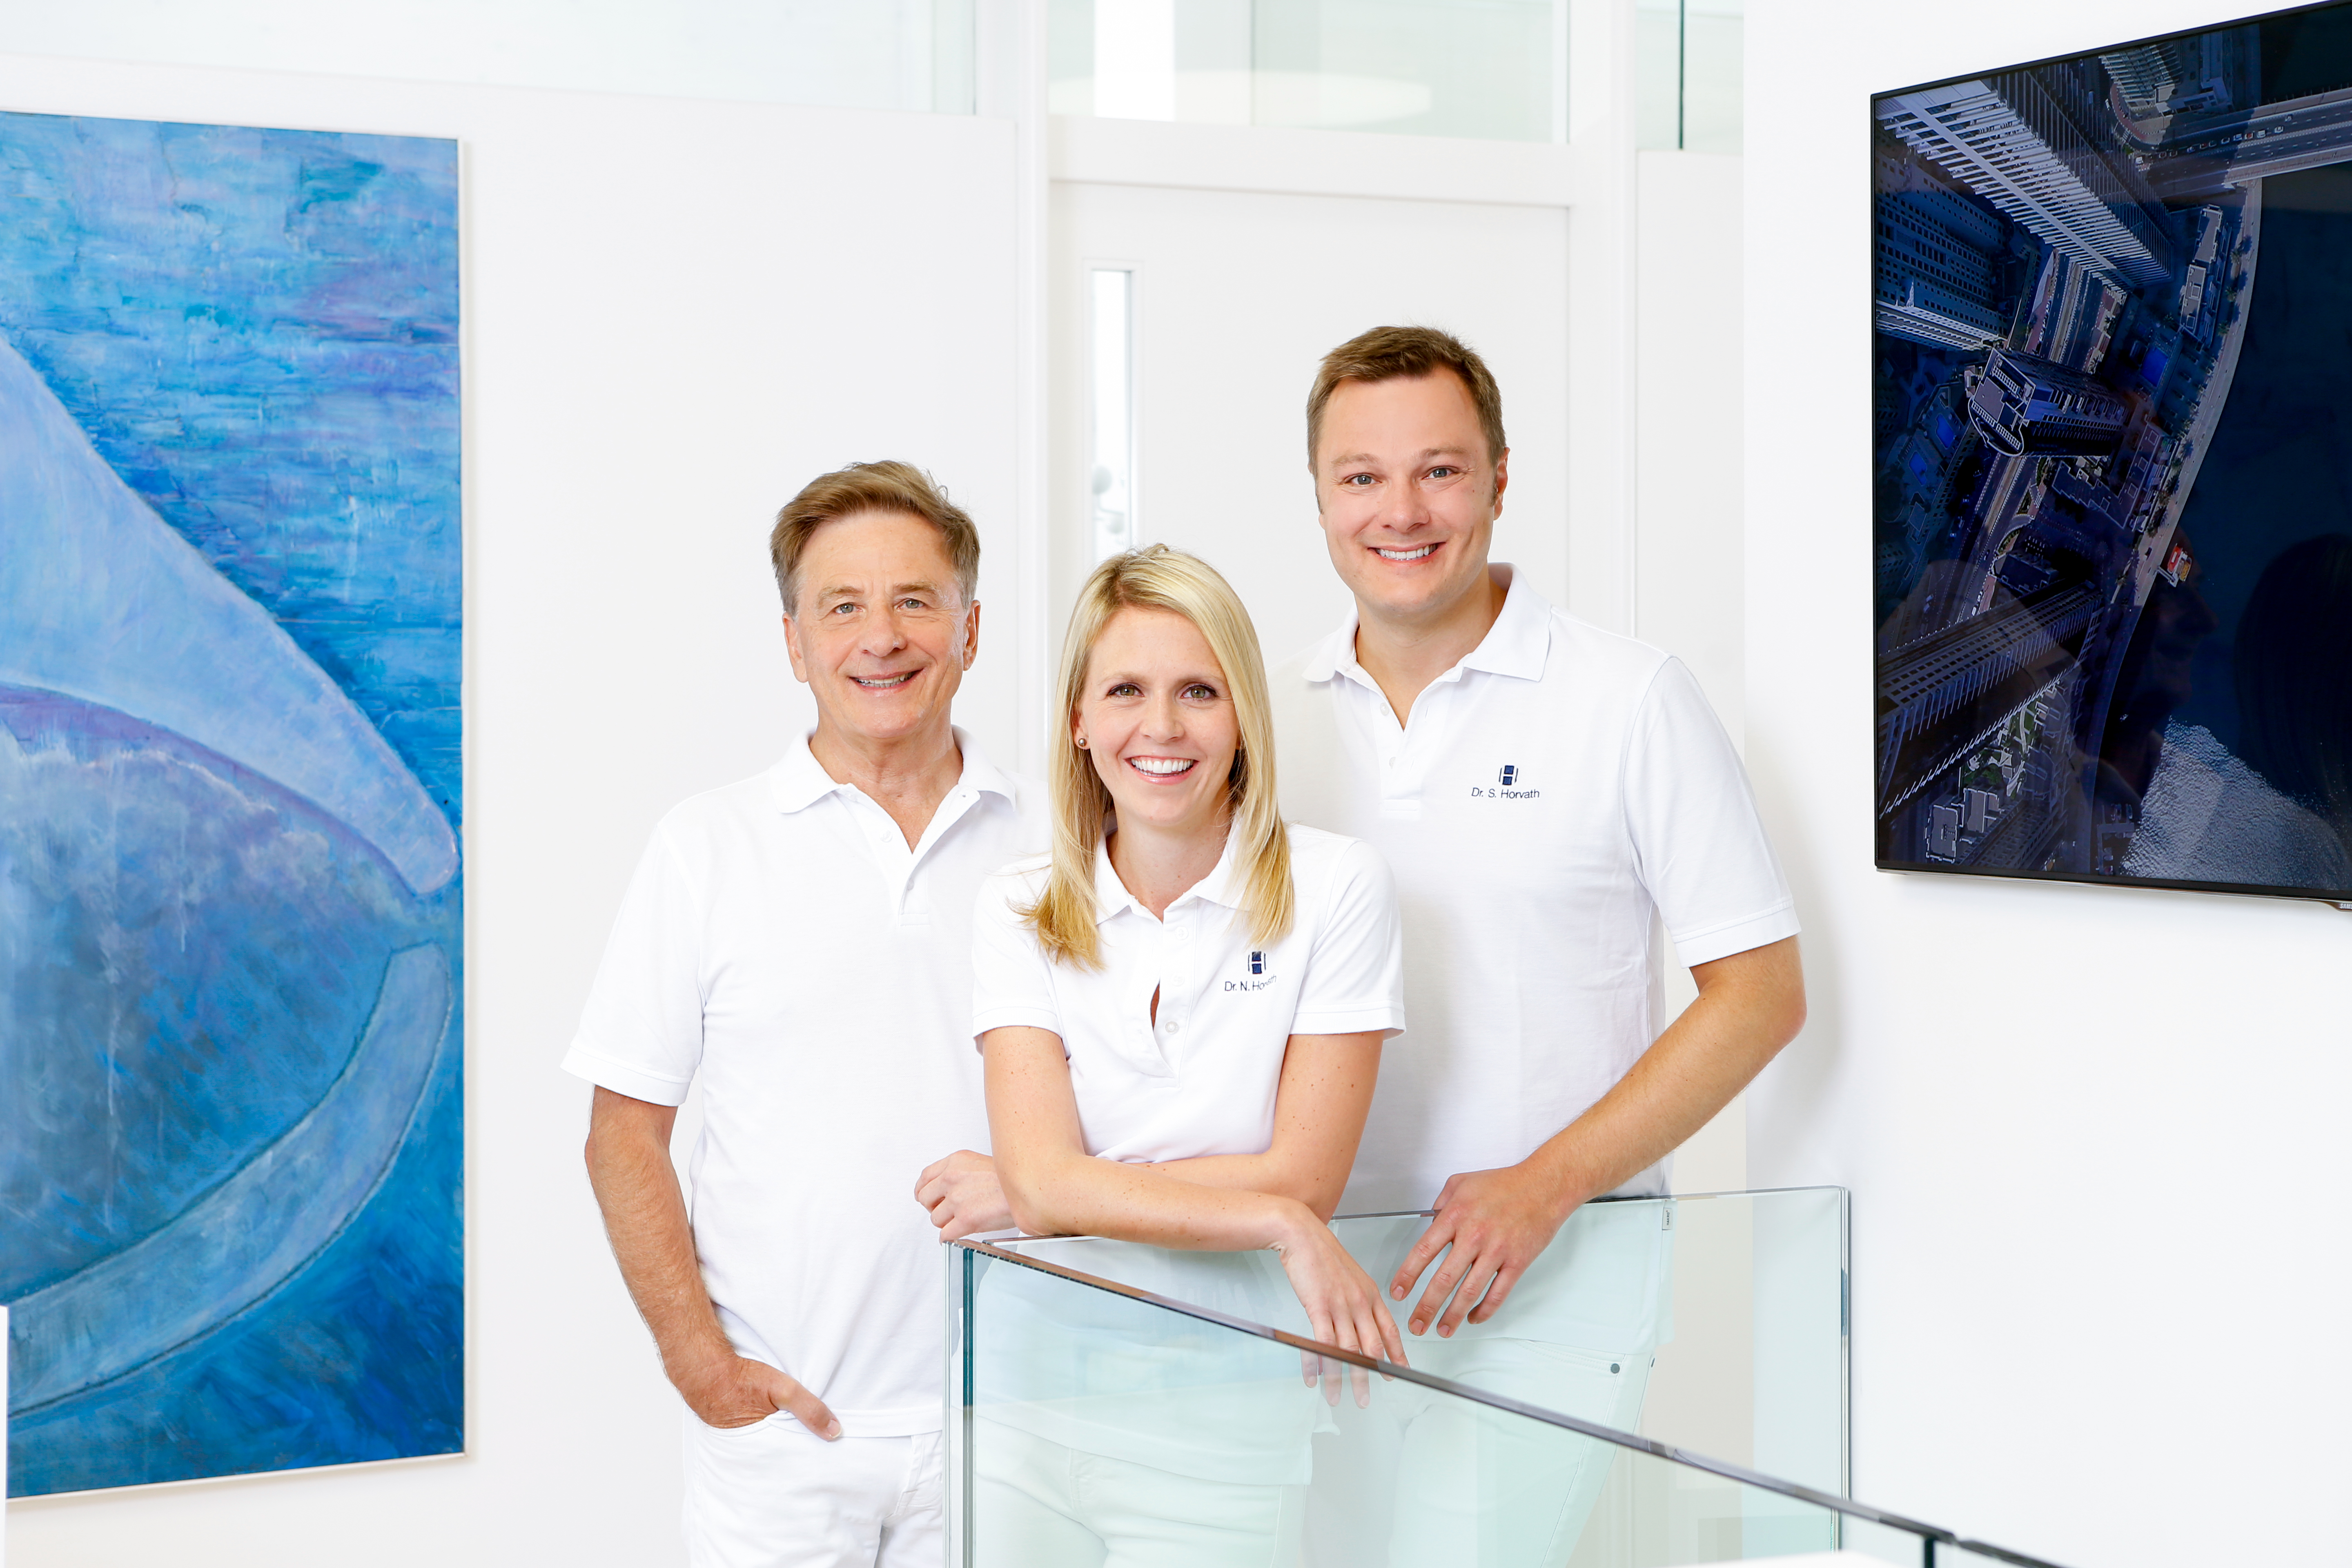 Dr. Sebastian Horvath (right) manages the family practice with his wife, Dr. Nicole Horvath, orthodontist, and his father, Dr. Domonkos Horvath, also a dentist.